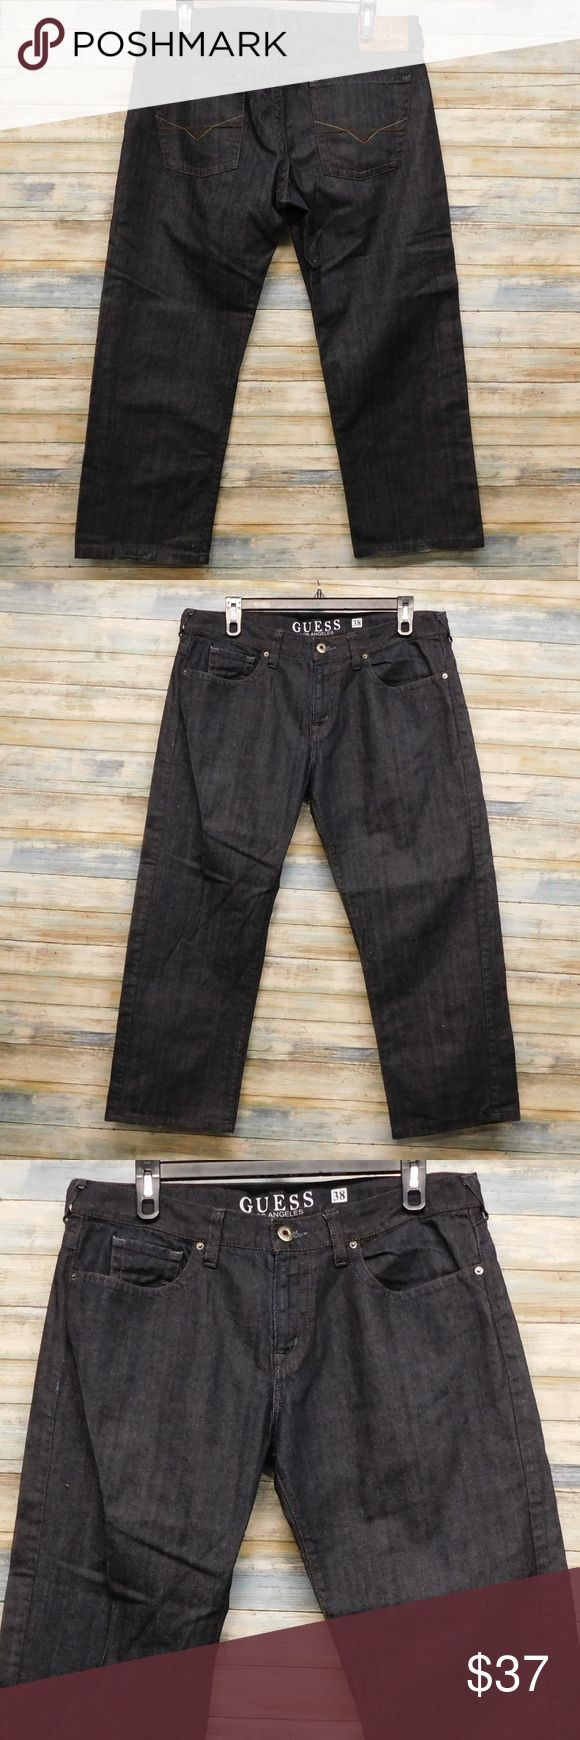 """Guess Jean Men Rebel Low rise Straight Fit  38x28 Guess Jean Men Rebel Low rise Straight Fit  38 x 28       (A-60) color: dark blue raw size 38 x  28"""" inseam   actual waist measures 40"""" RISE 11"""" LEG OPENING LAYING FLAT 9.5""""  Hemmed to 28"""" inseam 100% cotton   Light Fray Hem IN VERY GOOD CONDITION Guess Jeans Straight"""